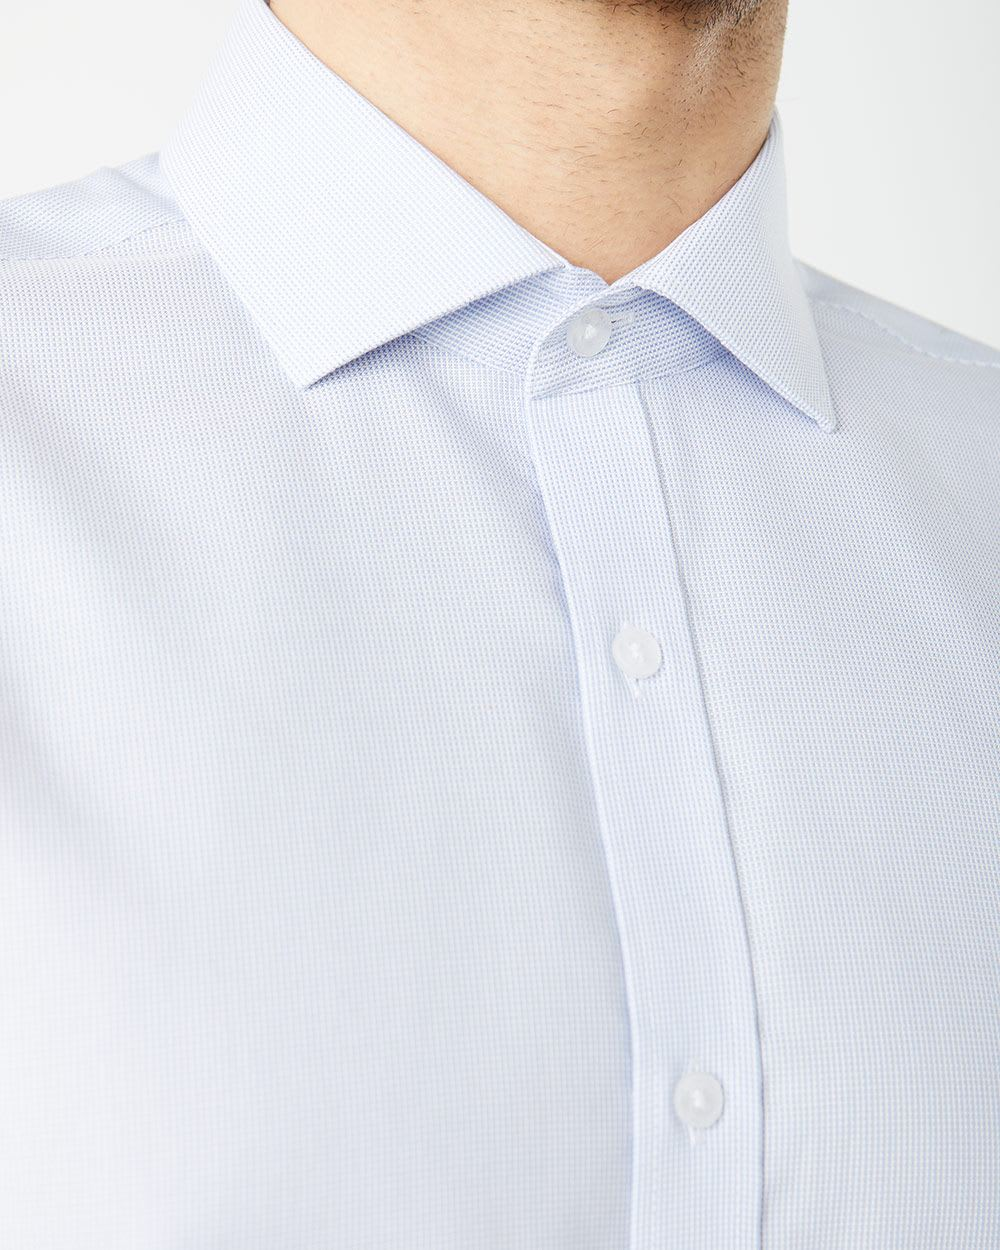 Athletic Fit light blue Dress Shirt